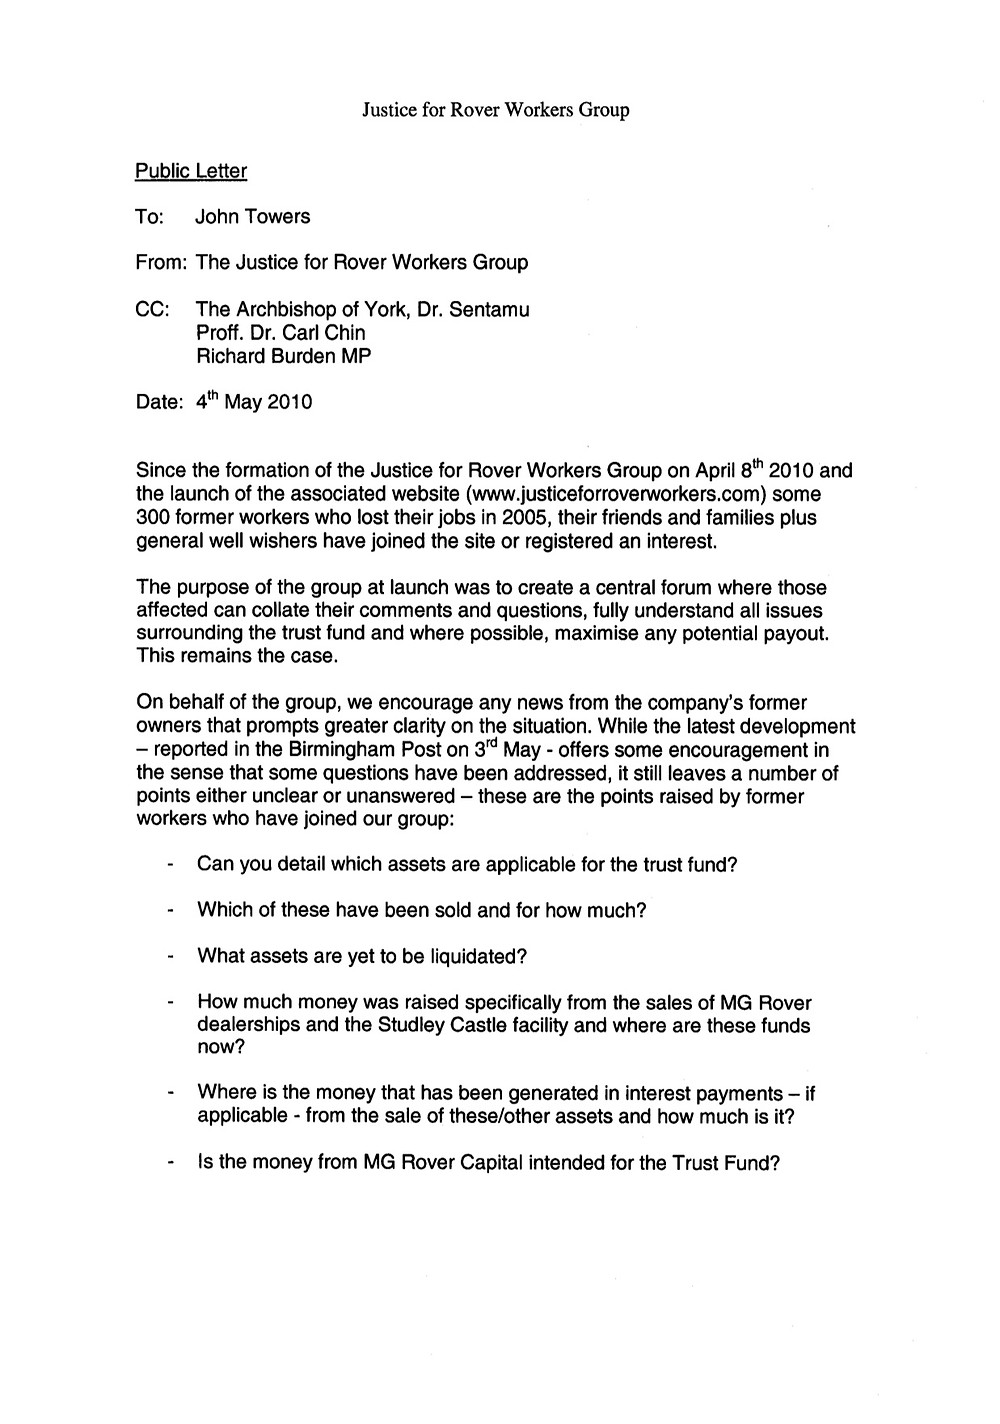 public-letter-4th-may-2010-1.jpg